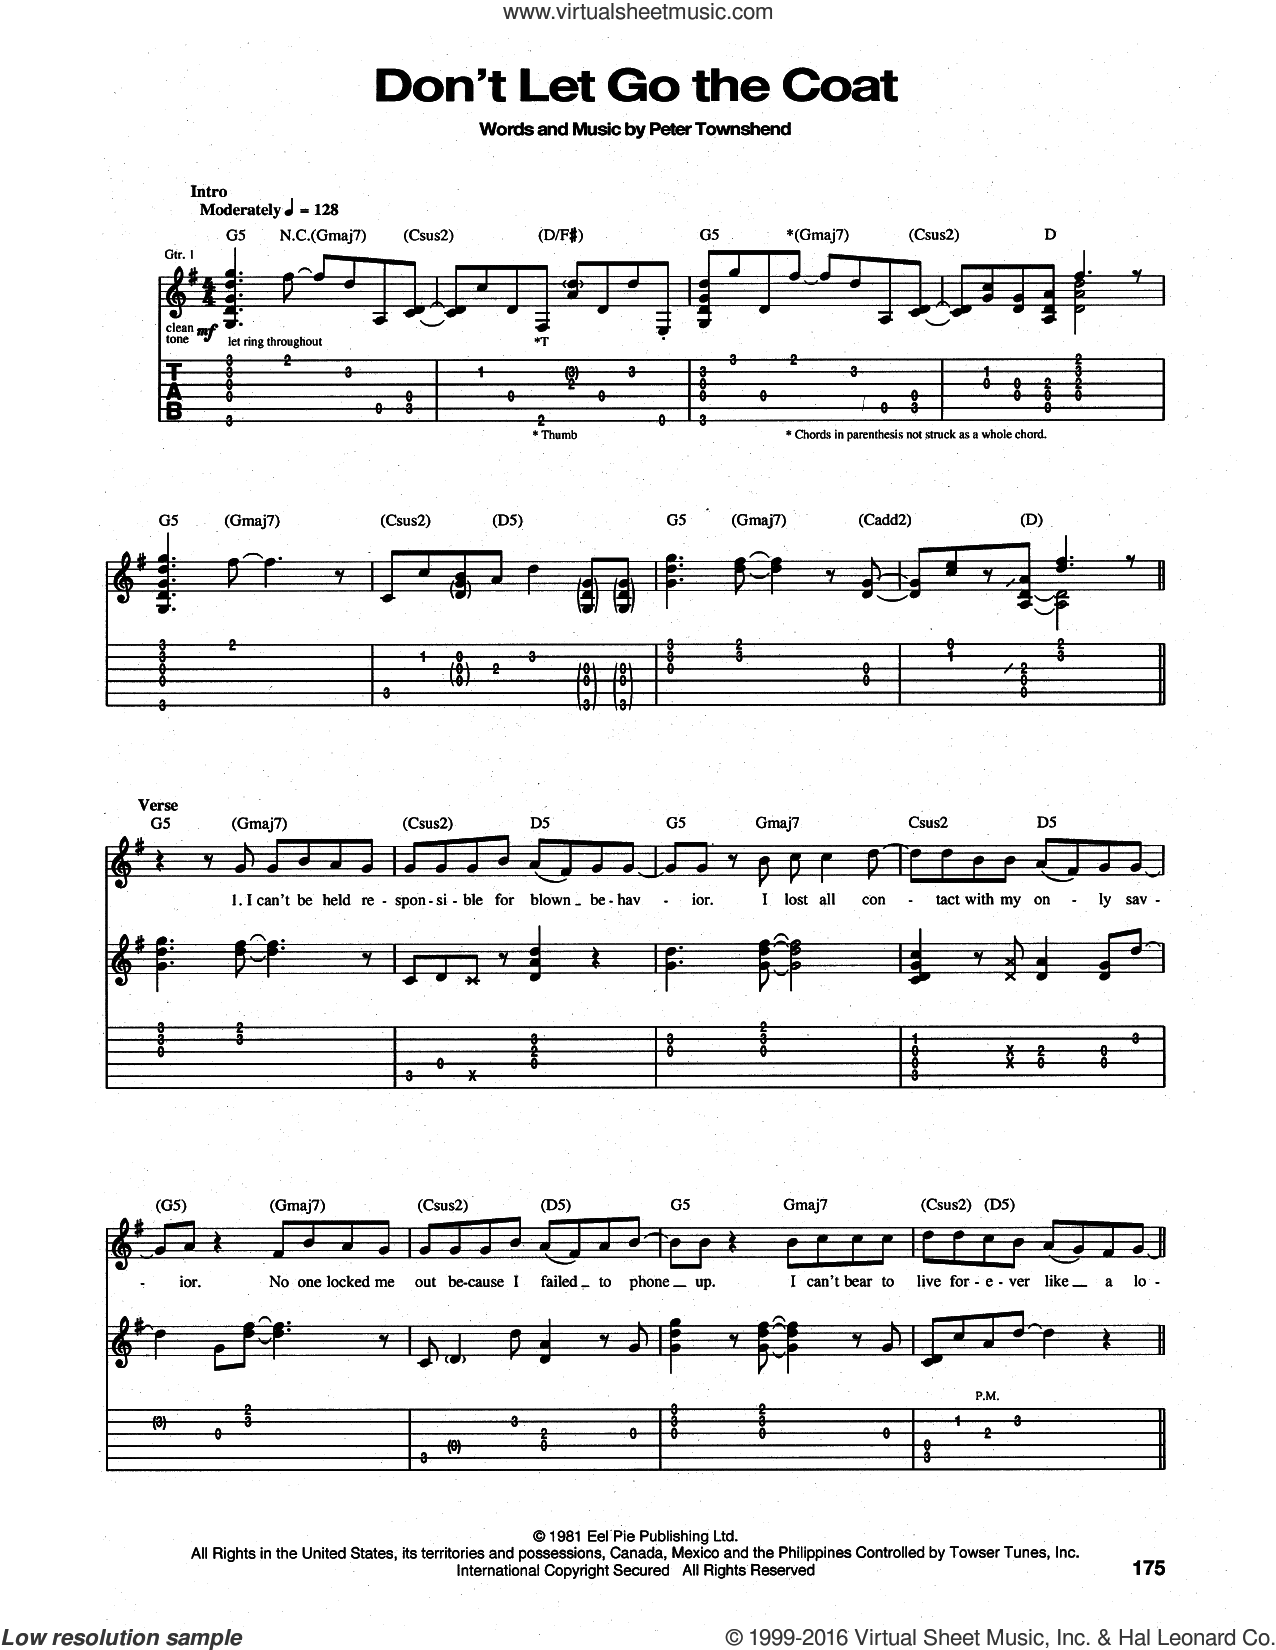 Don't Let Go The Coat sheet music for guitar (tablature) by Pete Townshend and The Who. Score Image Preview.